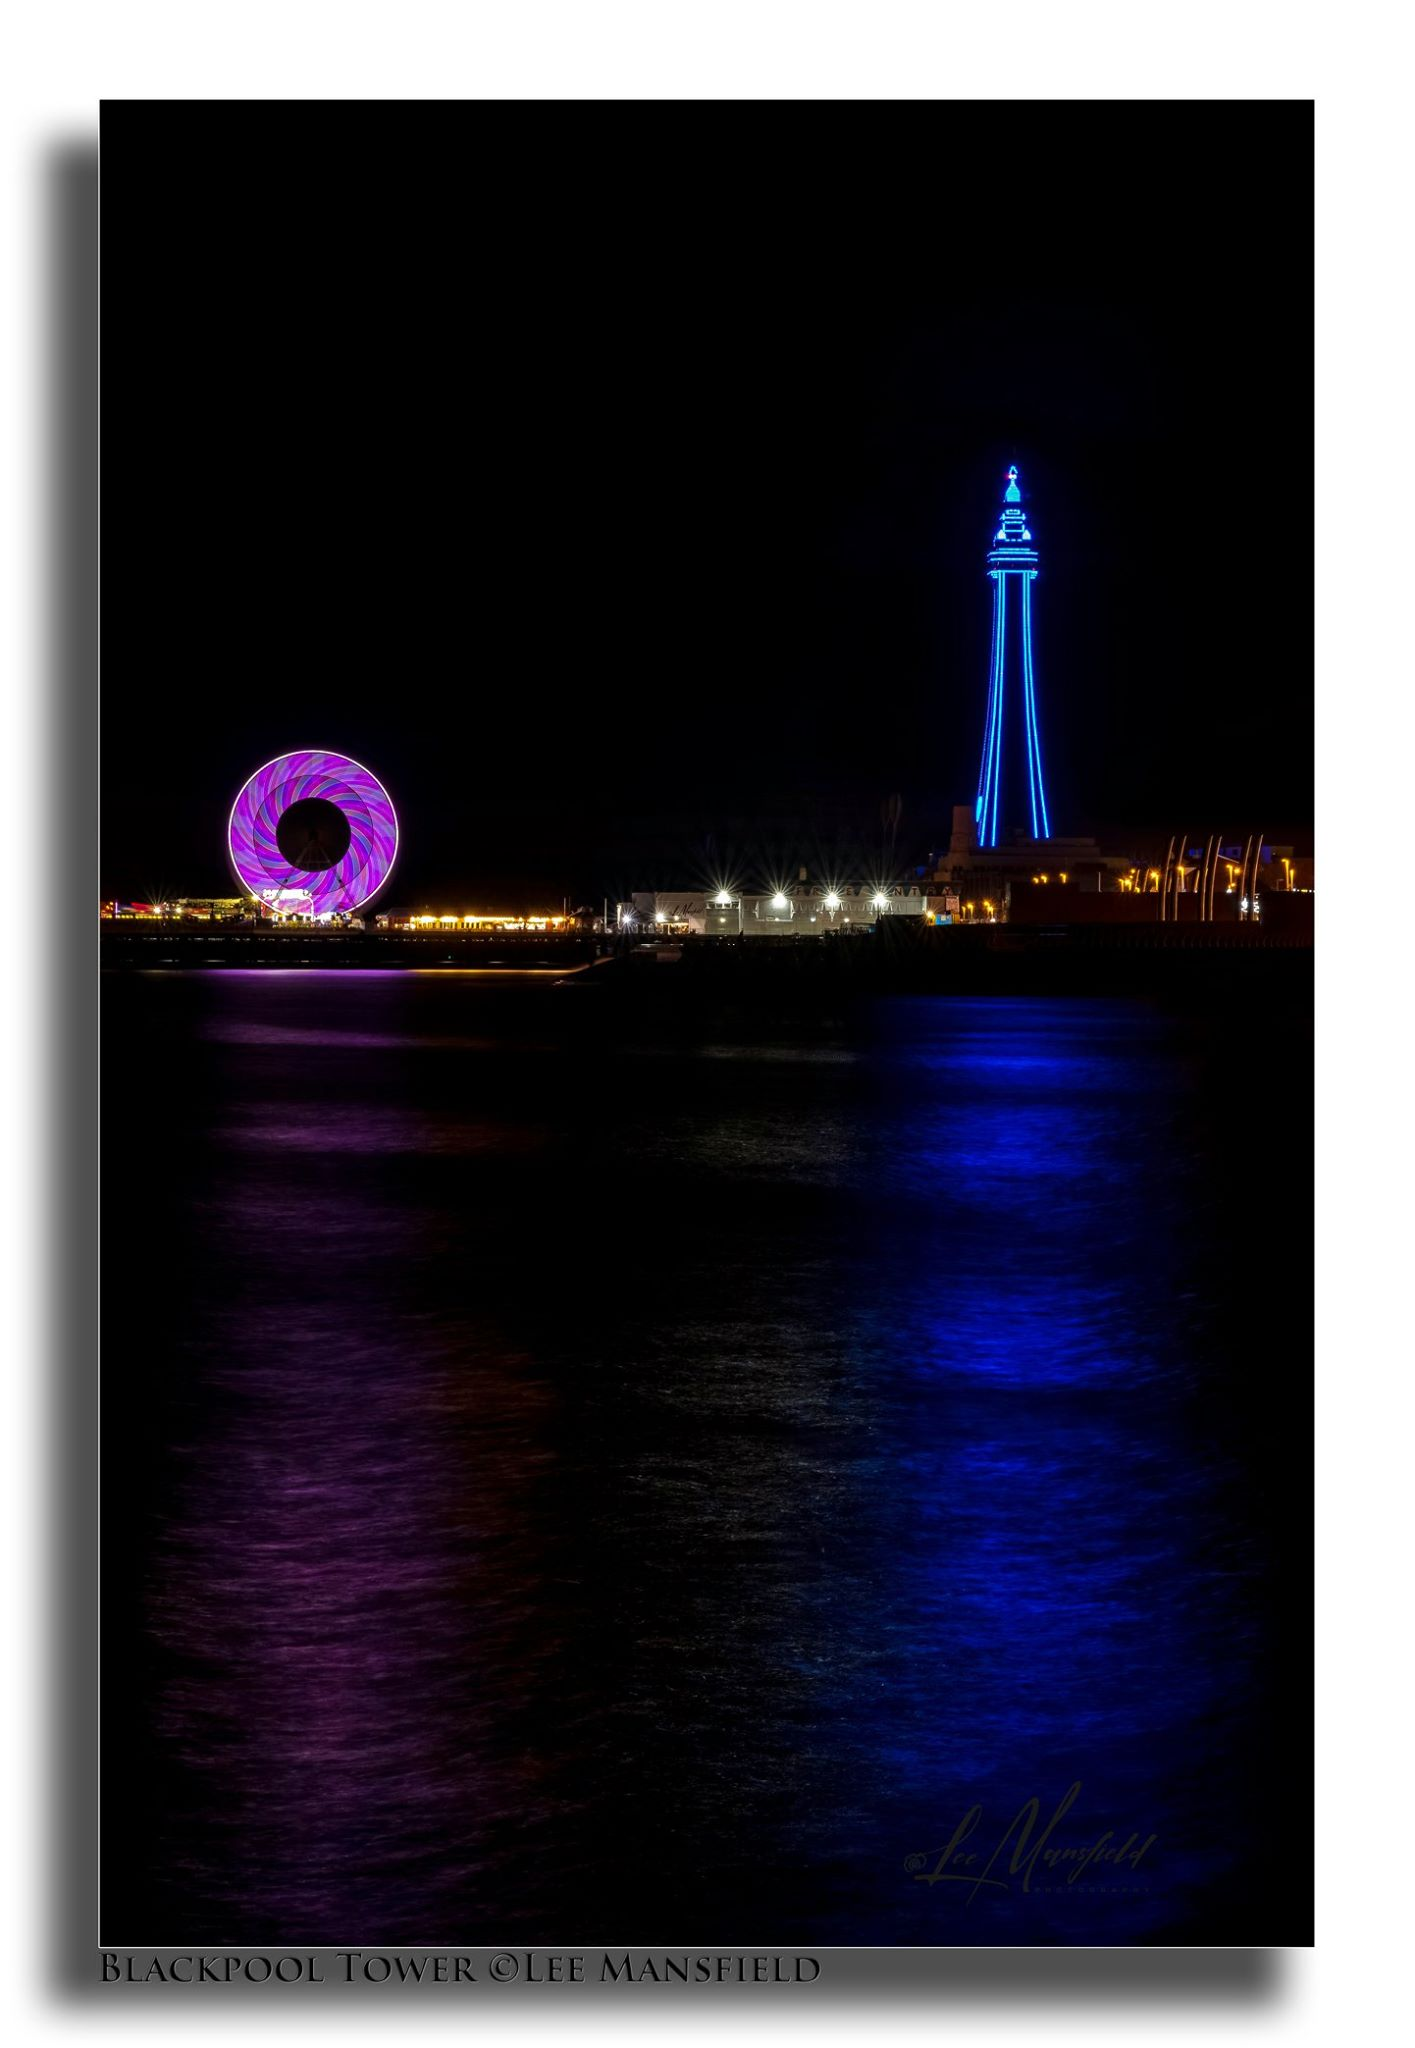 Blackpool Tower - illuminated